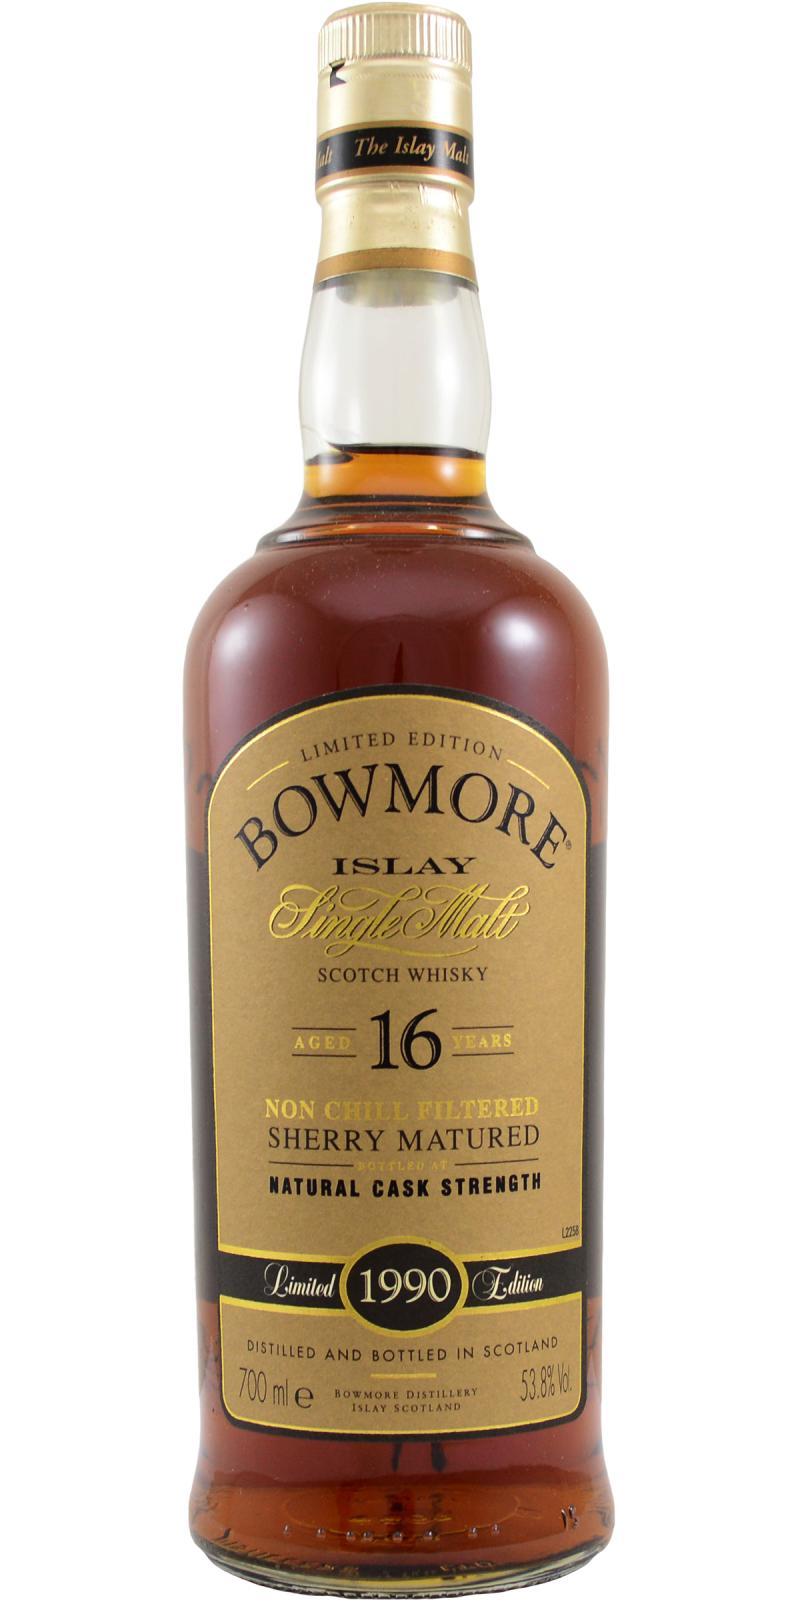 Bowmore 1990 Sherry Matured